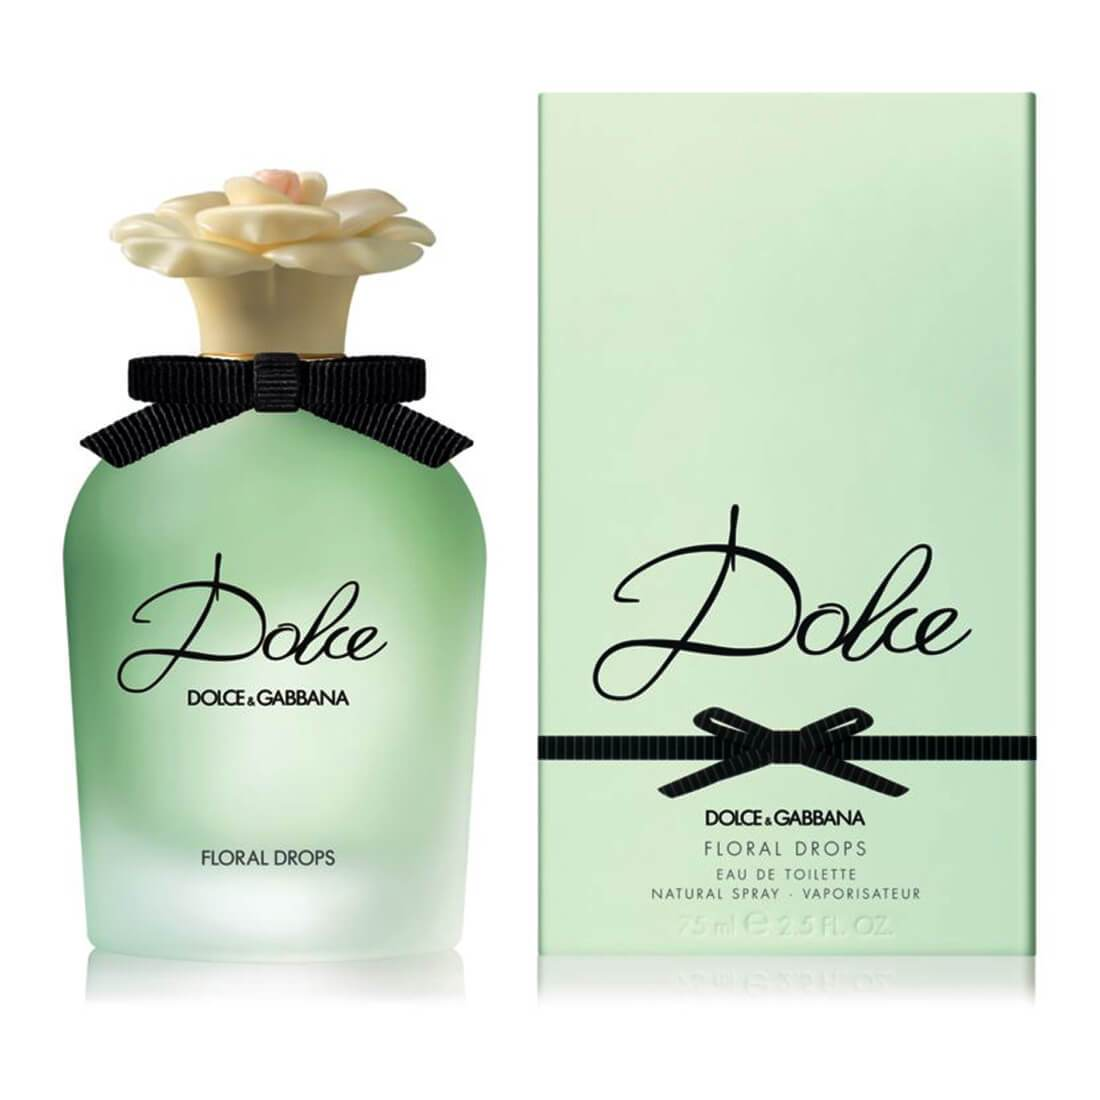 Dolce & Gabbana Dolce Floral Drops Eau De Toilette For Women 75ml